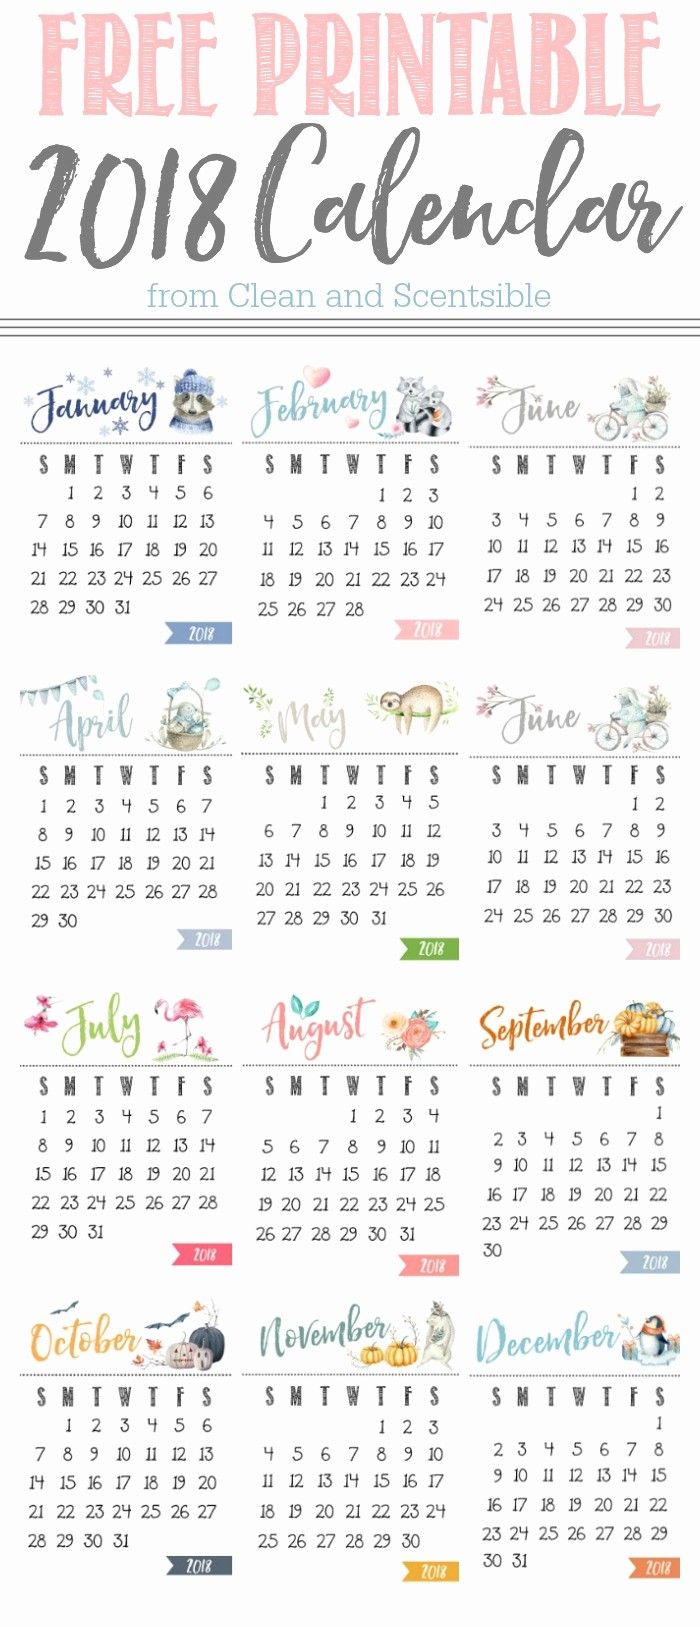 Free Printable Yearly Calendar 2018 New Cute Free Printable 2018 Yearly Calendar